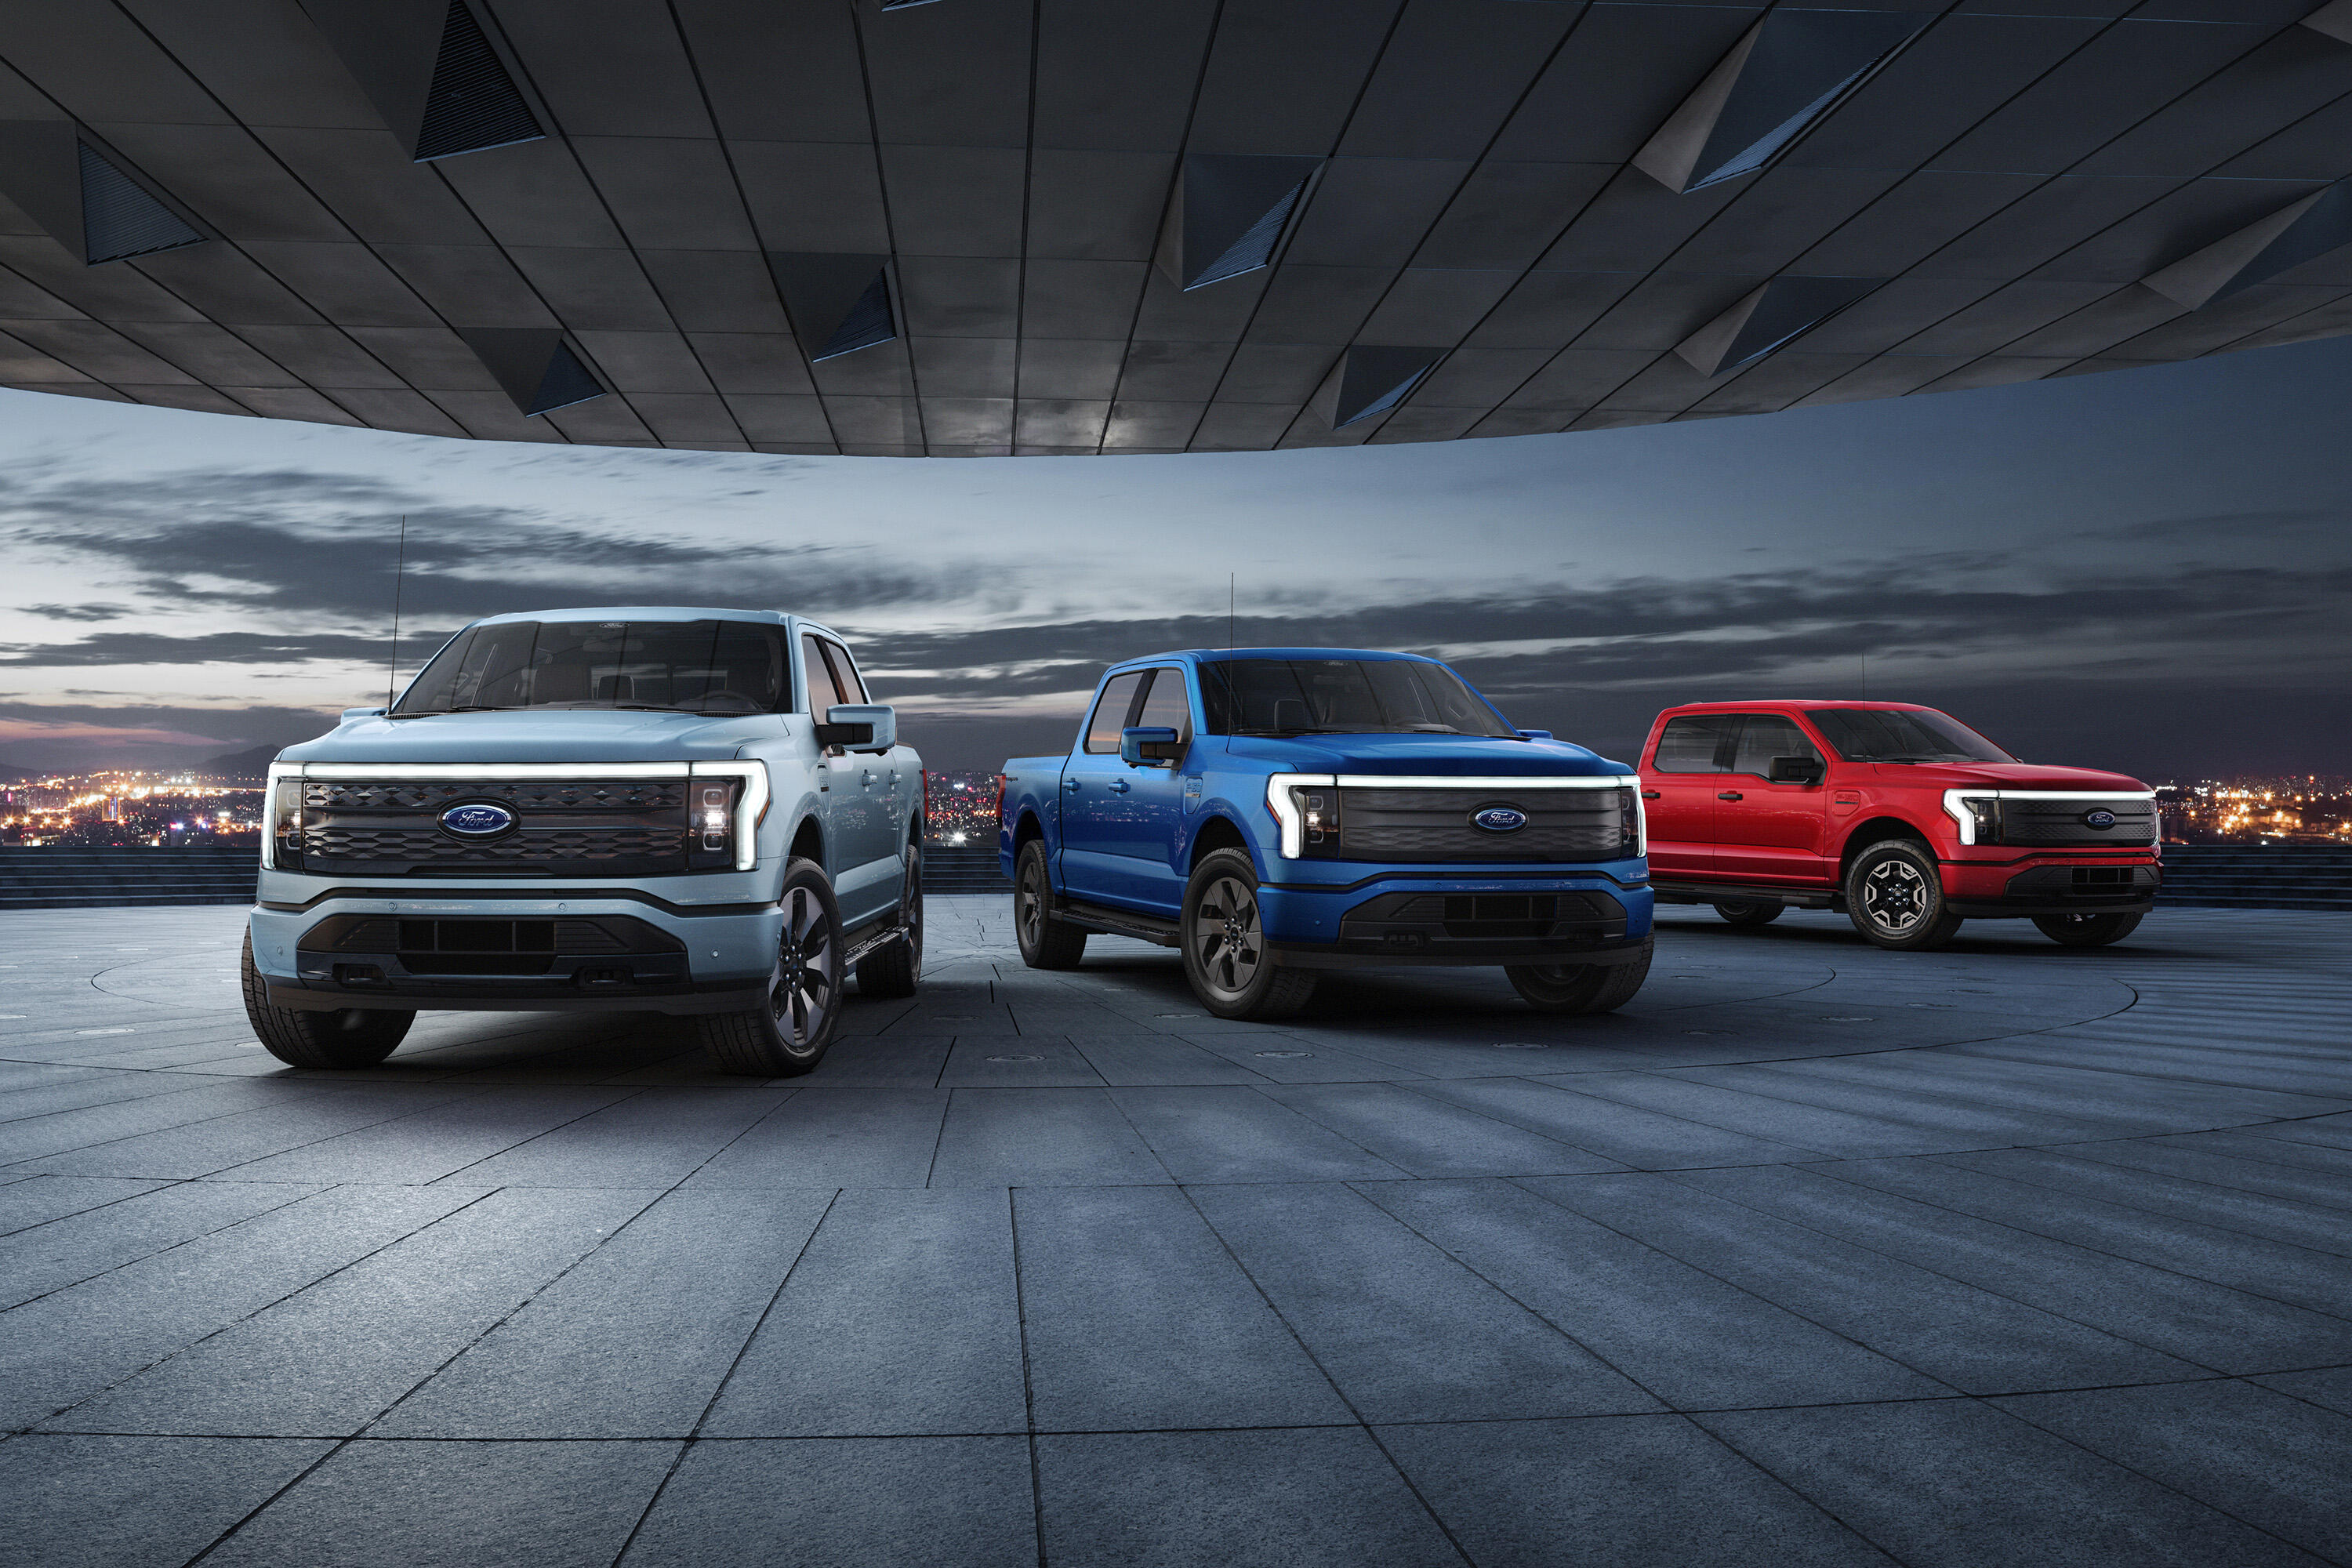 2022 Ford F-150 Lightning - red, blue and silver